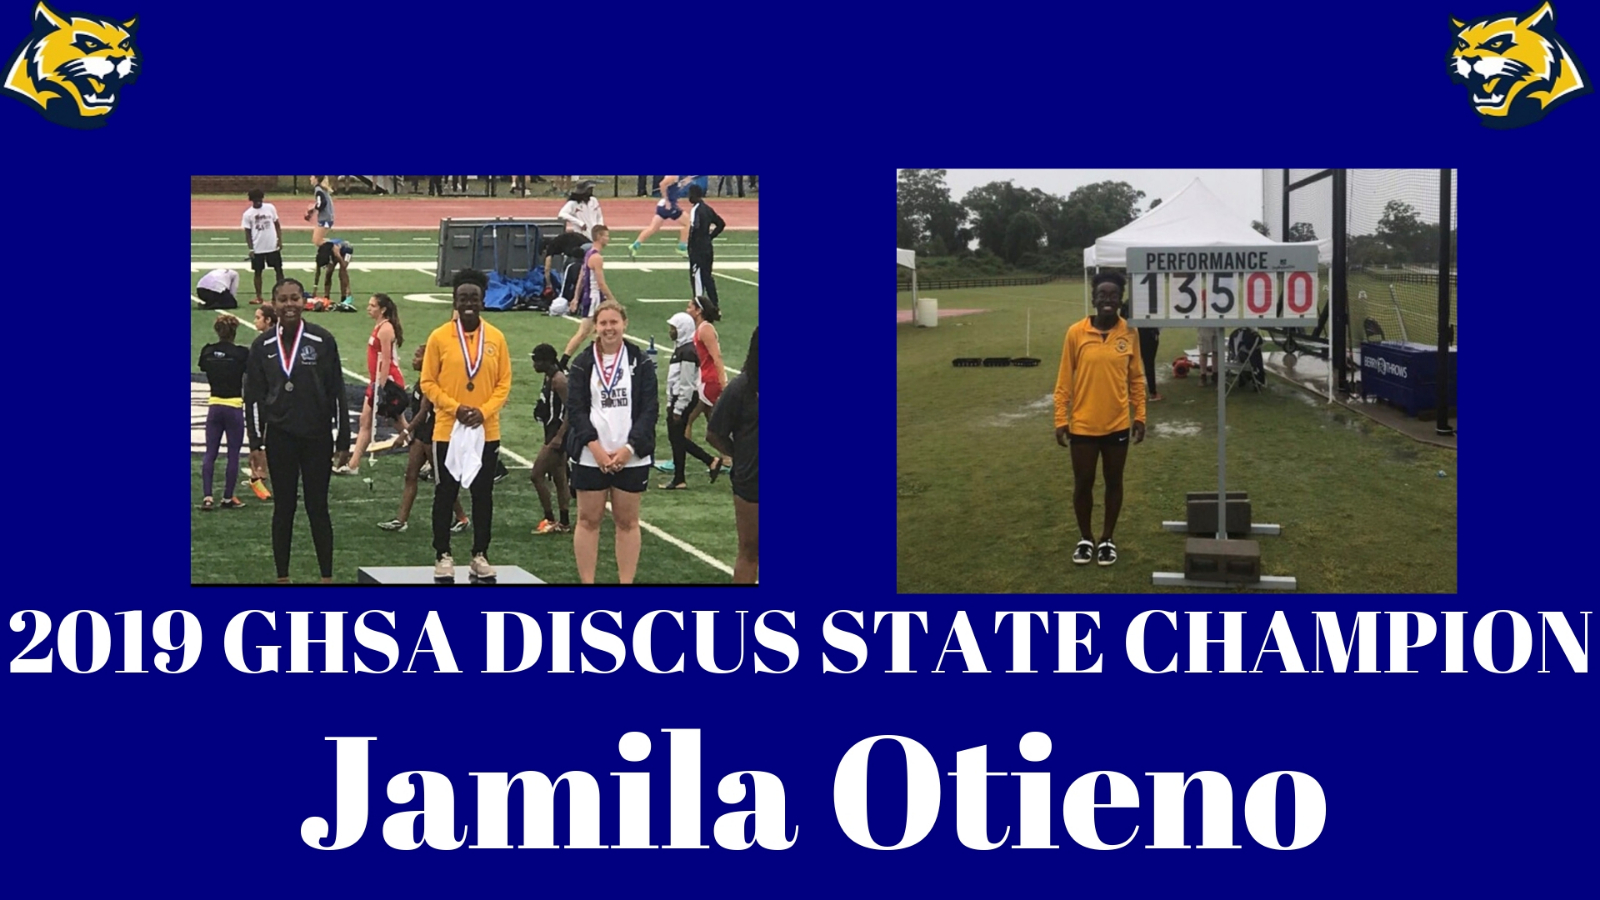 2019 State Discus Champion